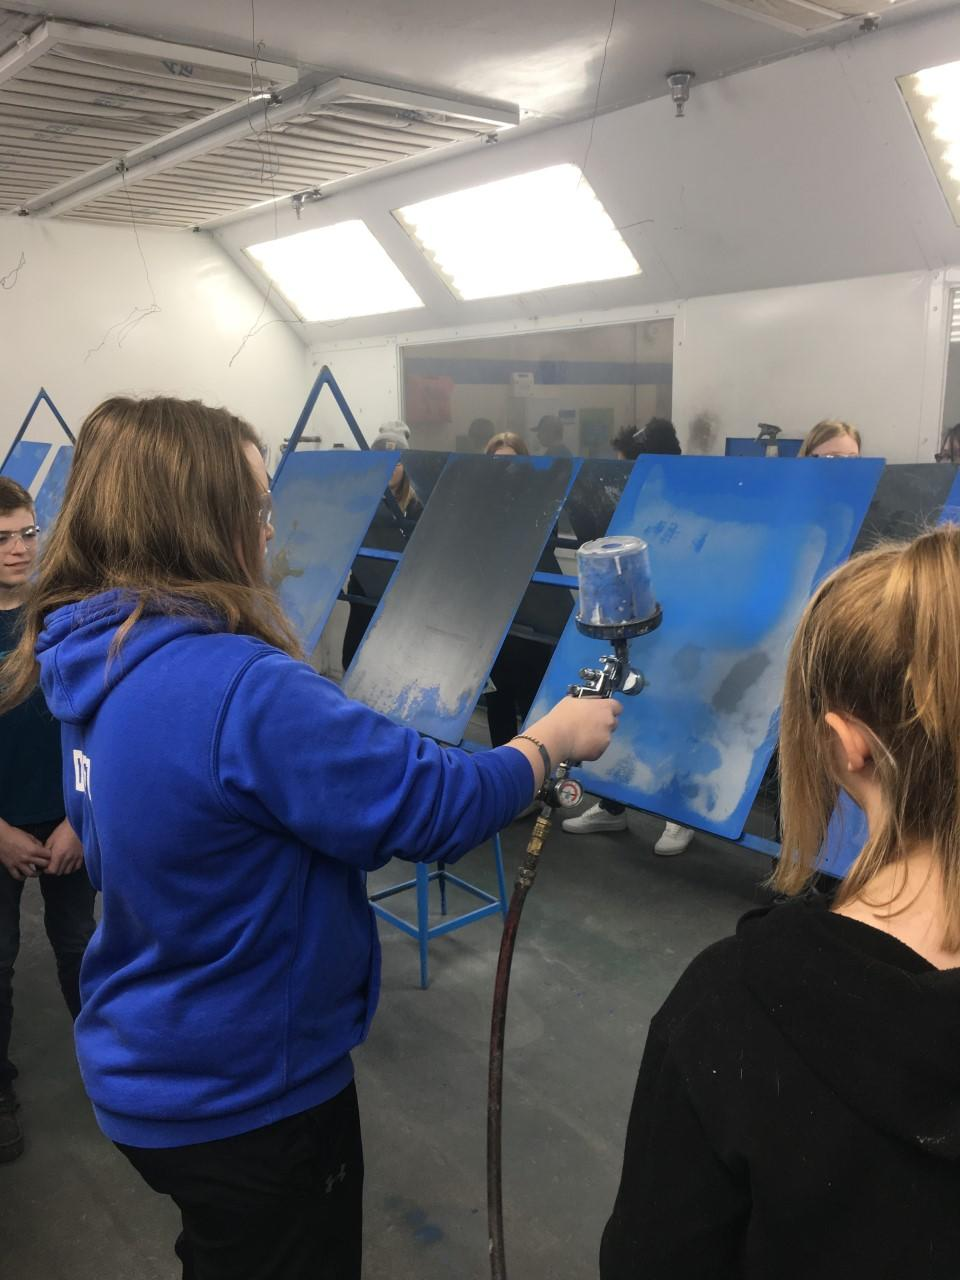 8th grade tries autobody air painting